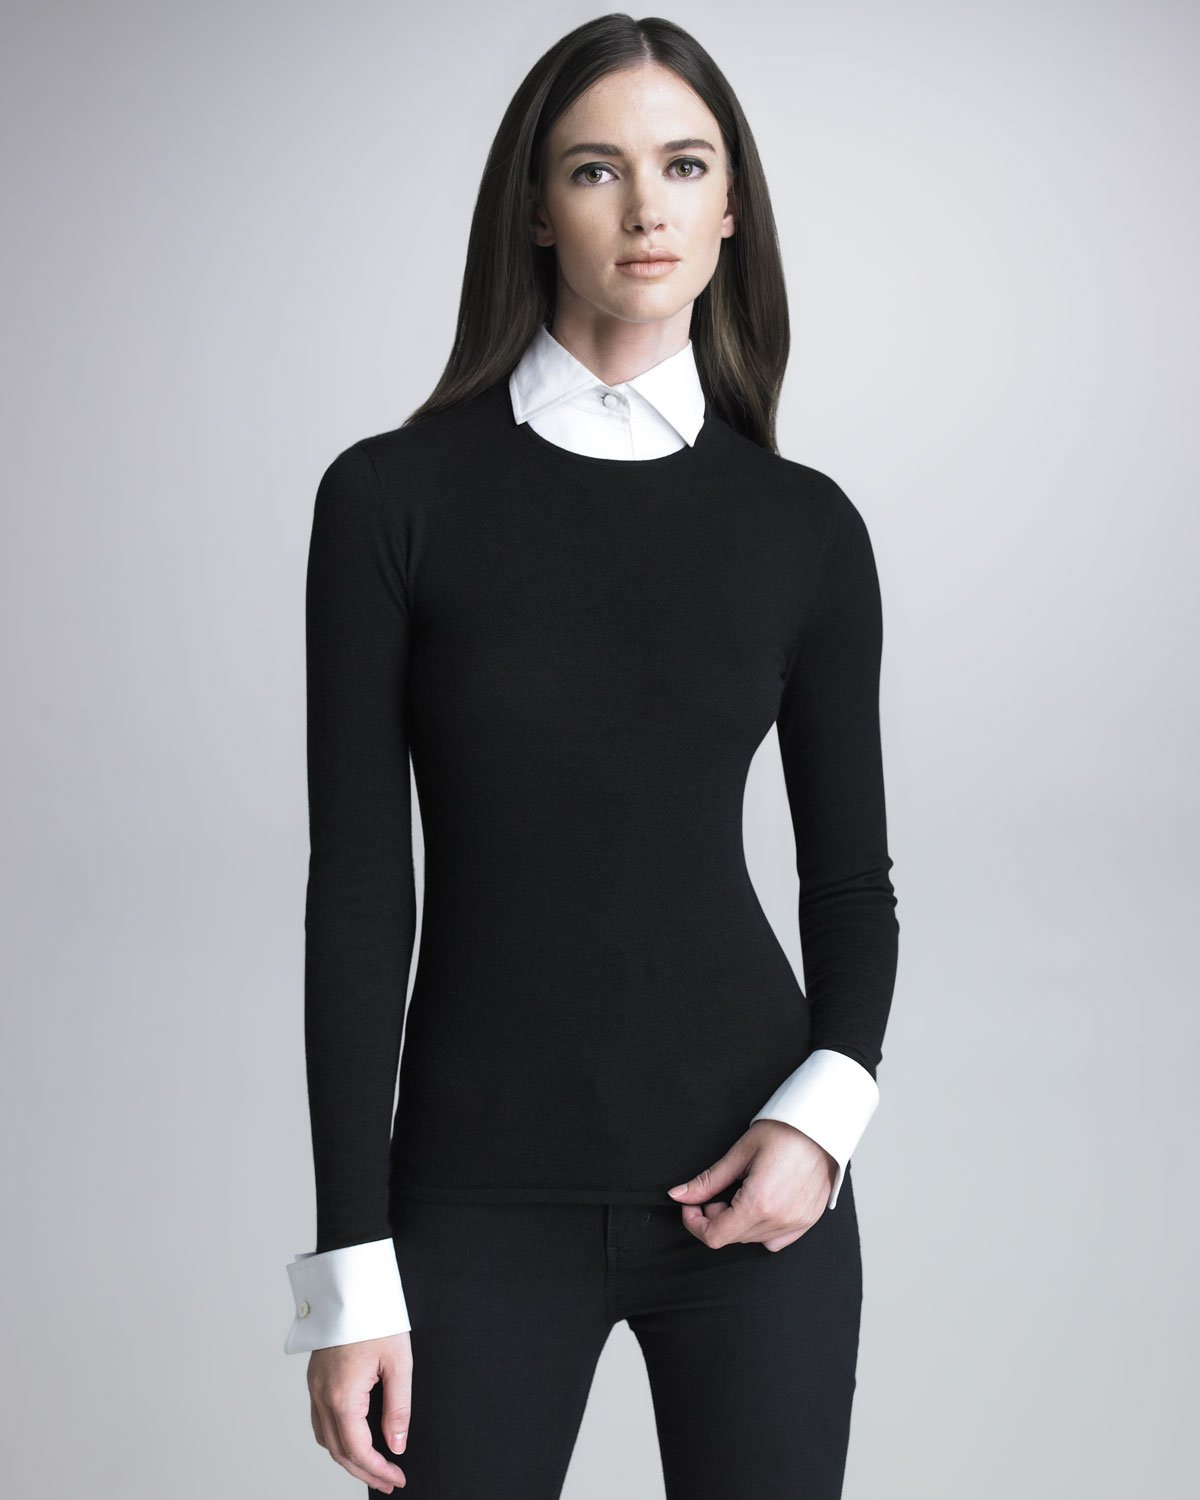 Find great deals on eBay for black short sleeve sweater. Shop with confidence.